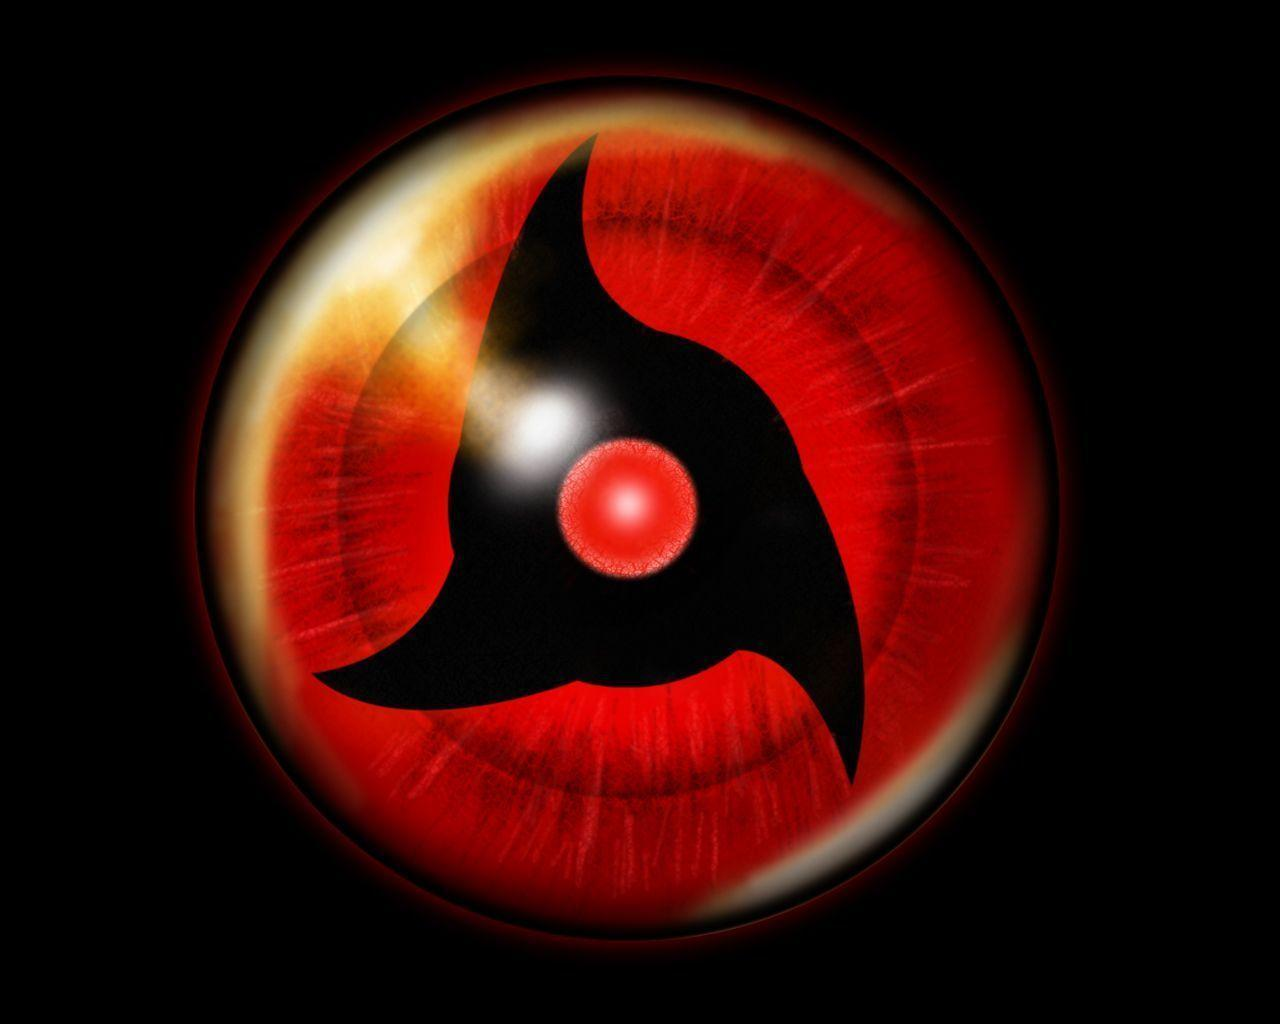 Wallpapers For > Obito Mangekyou Sharingan Wallpaper